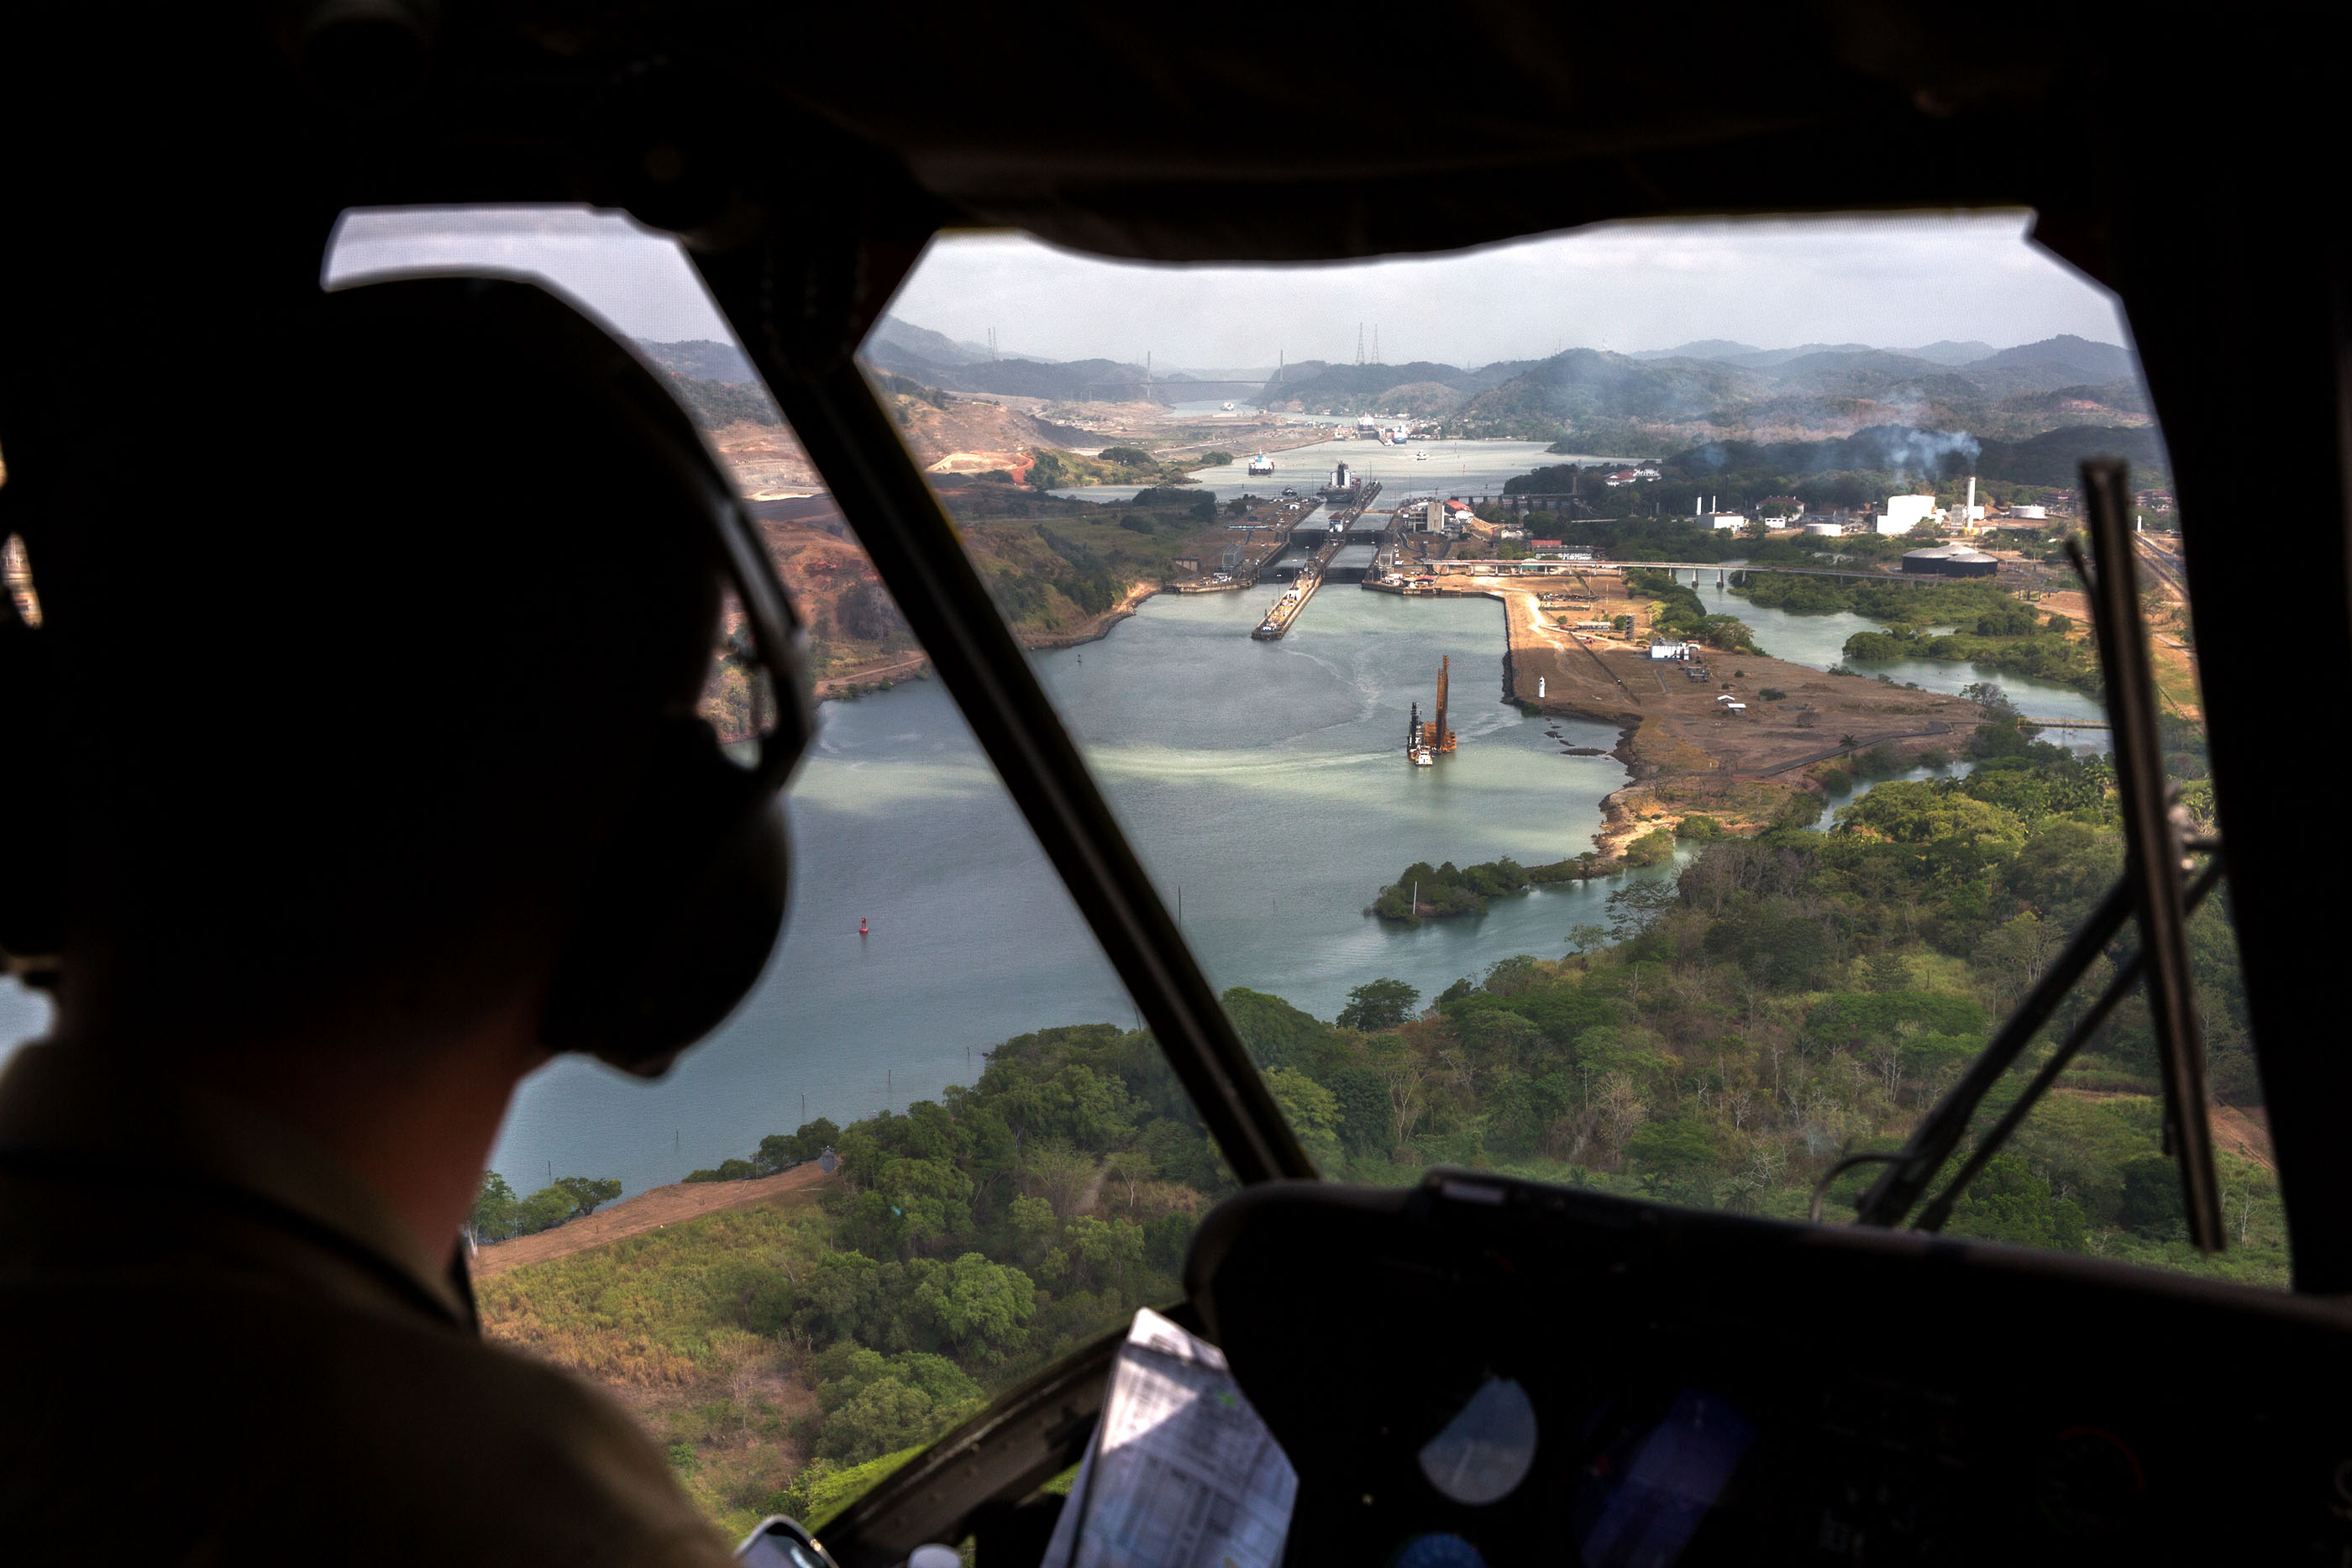 A view of the Panama Canal from the cockpit of Marine One, April 10, 2015. (Official White House Photo by Pete Souza)